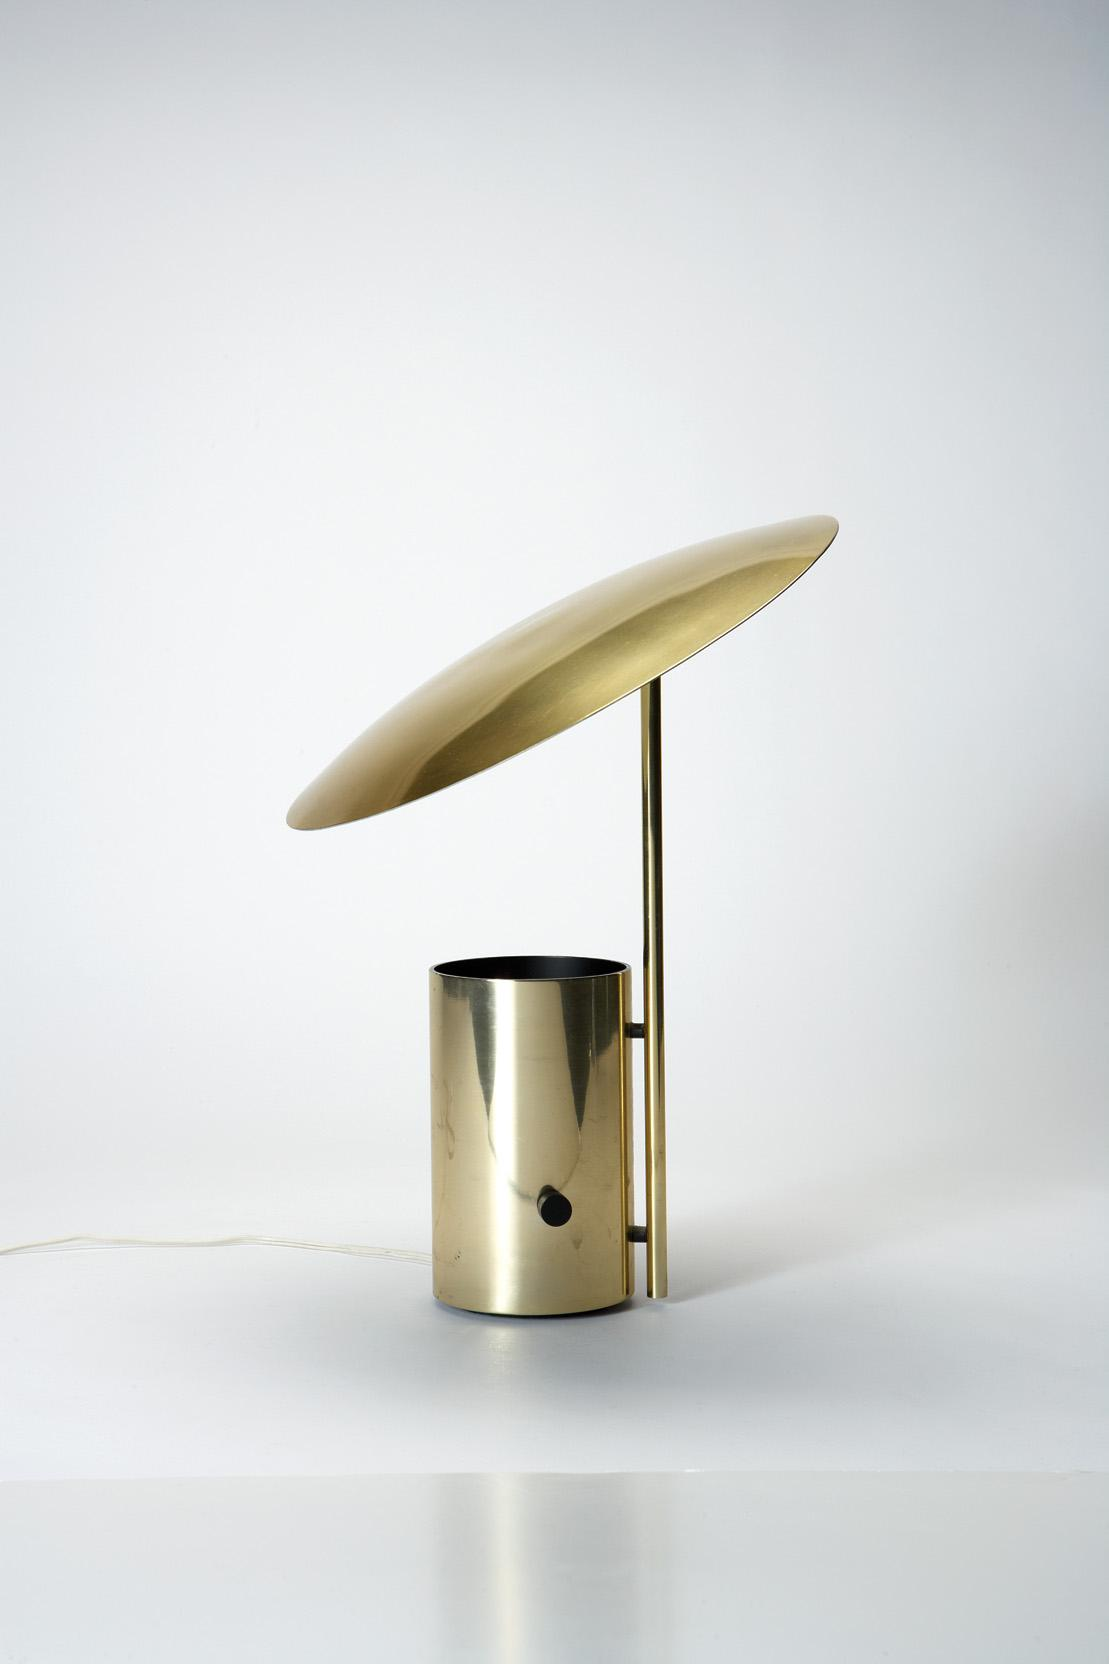 George nelson koch lowy half nelson table lamp image 1 george nelson koch lowy half nelson table aloadofball Image collections